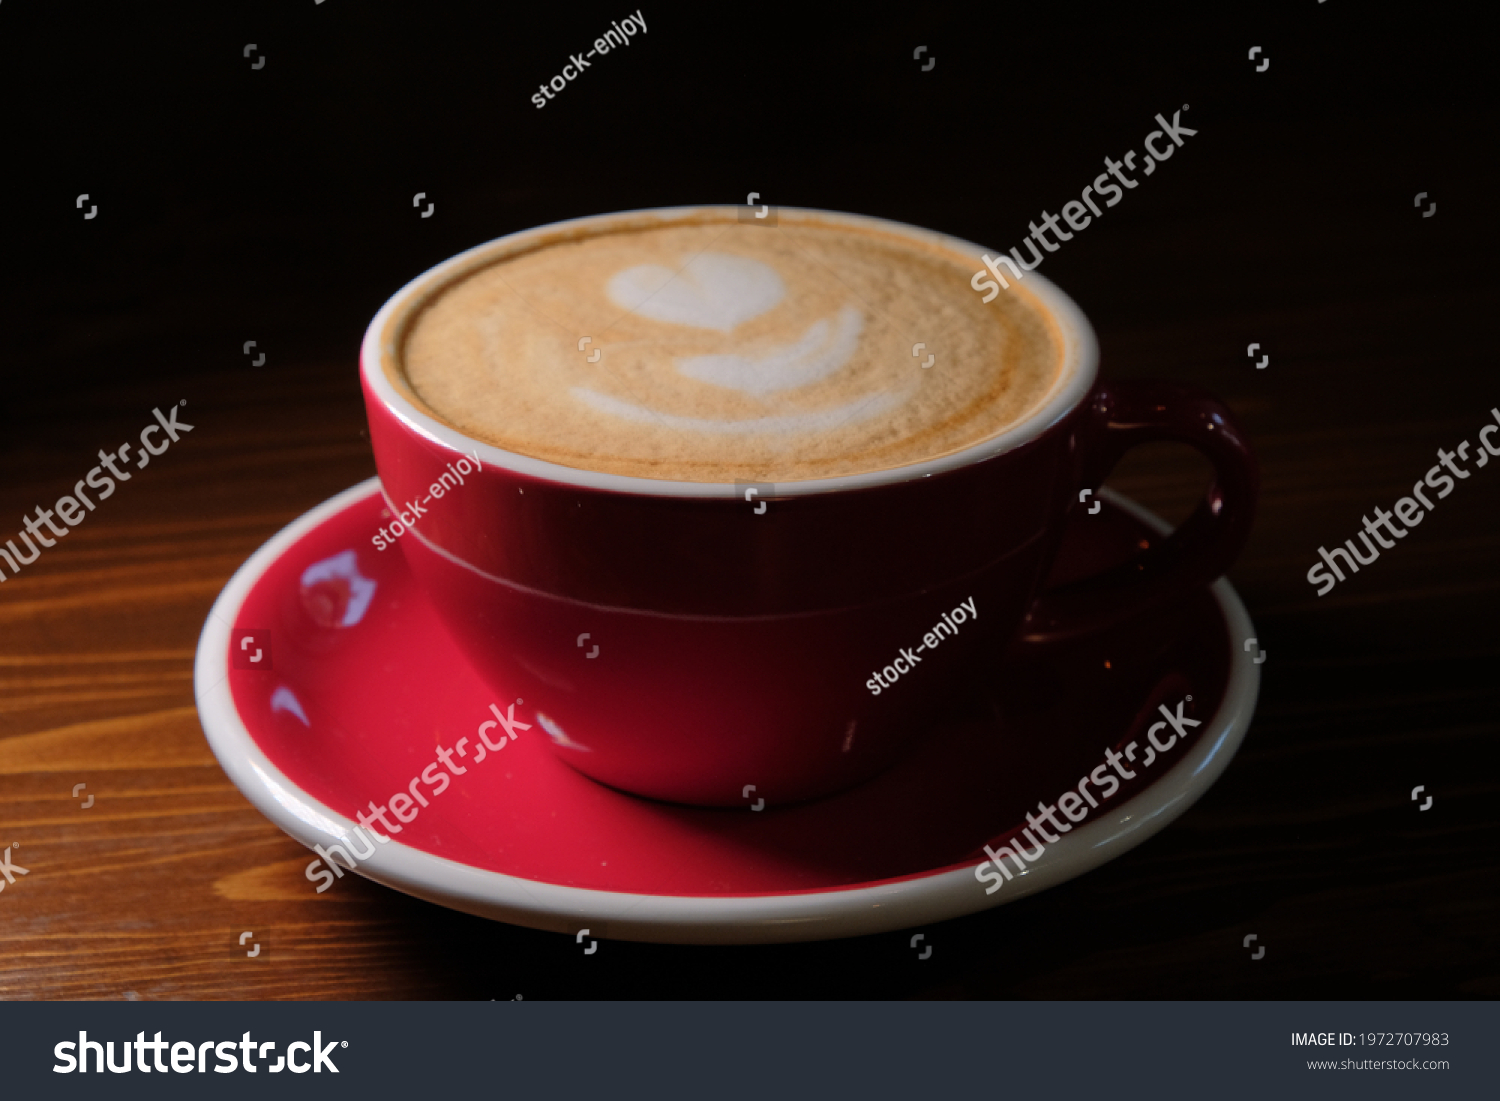 stock-photo-red-cup-of-coffee-in-dark-ro